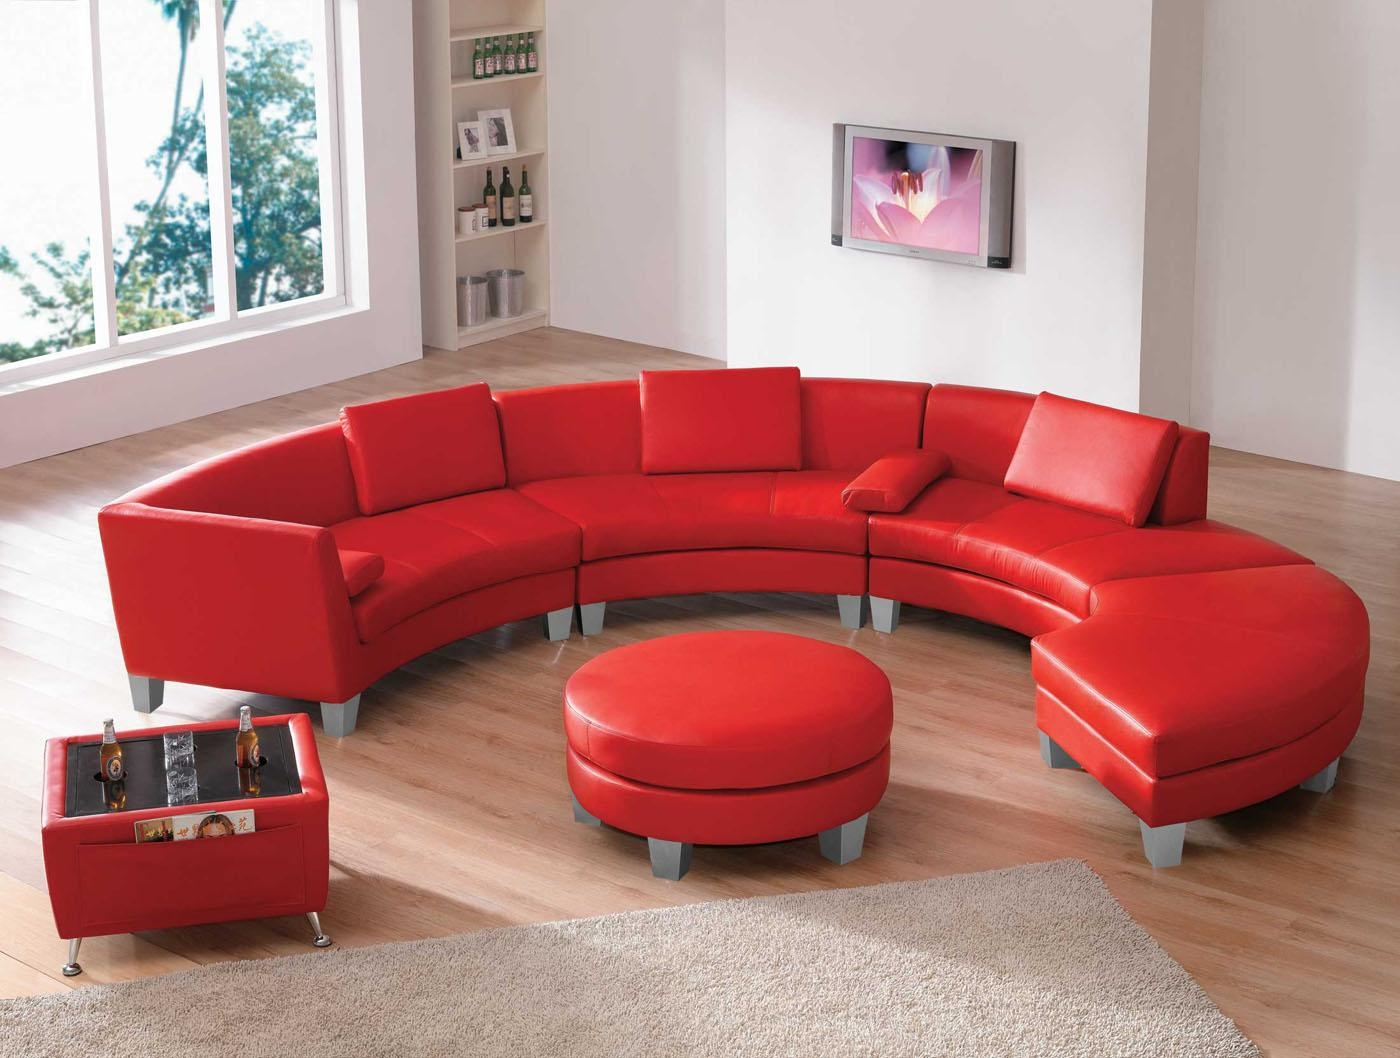 Modern Furniture Chair And Modern Chairs Modular Furniture Design For Red Sofas And Chairs (Image 9 of 20)